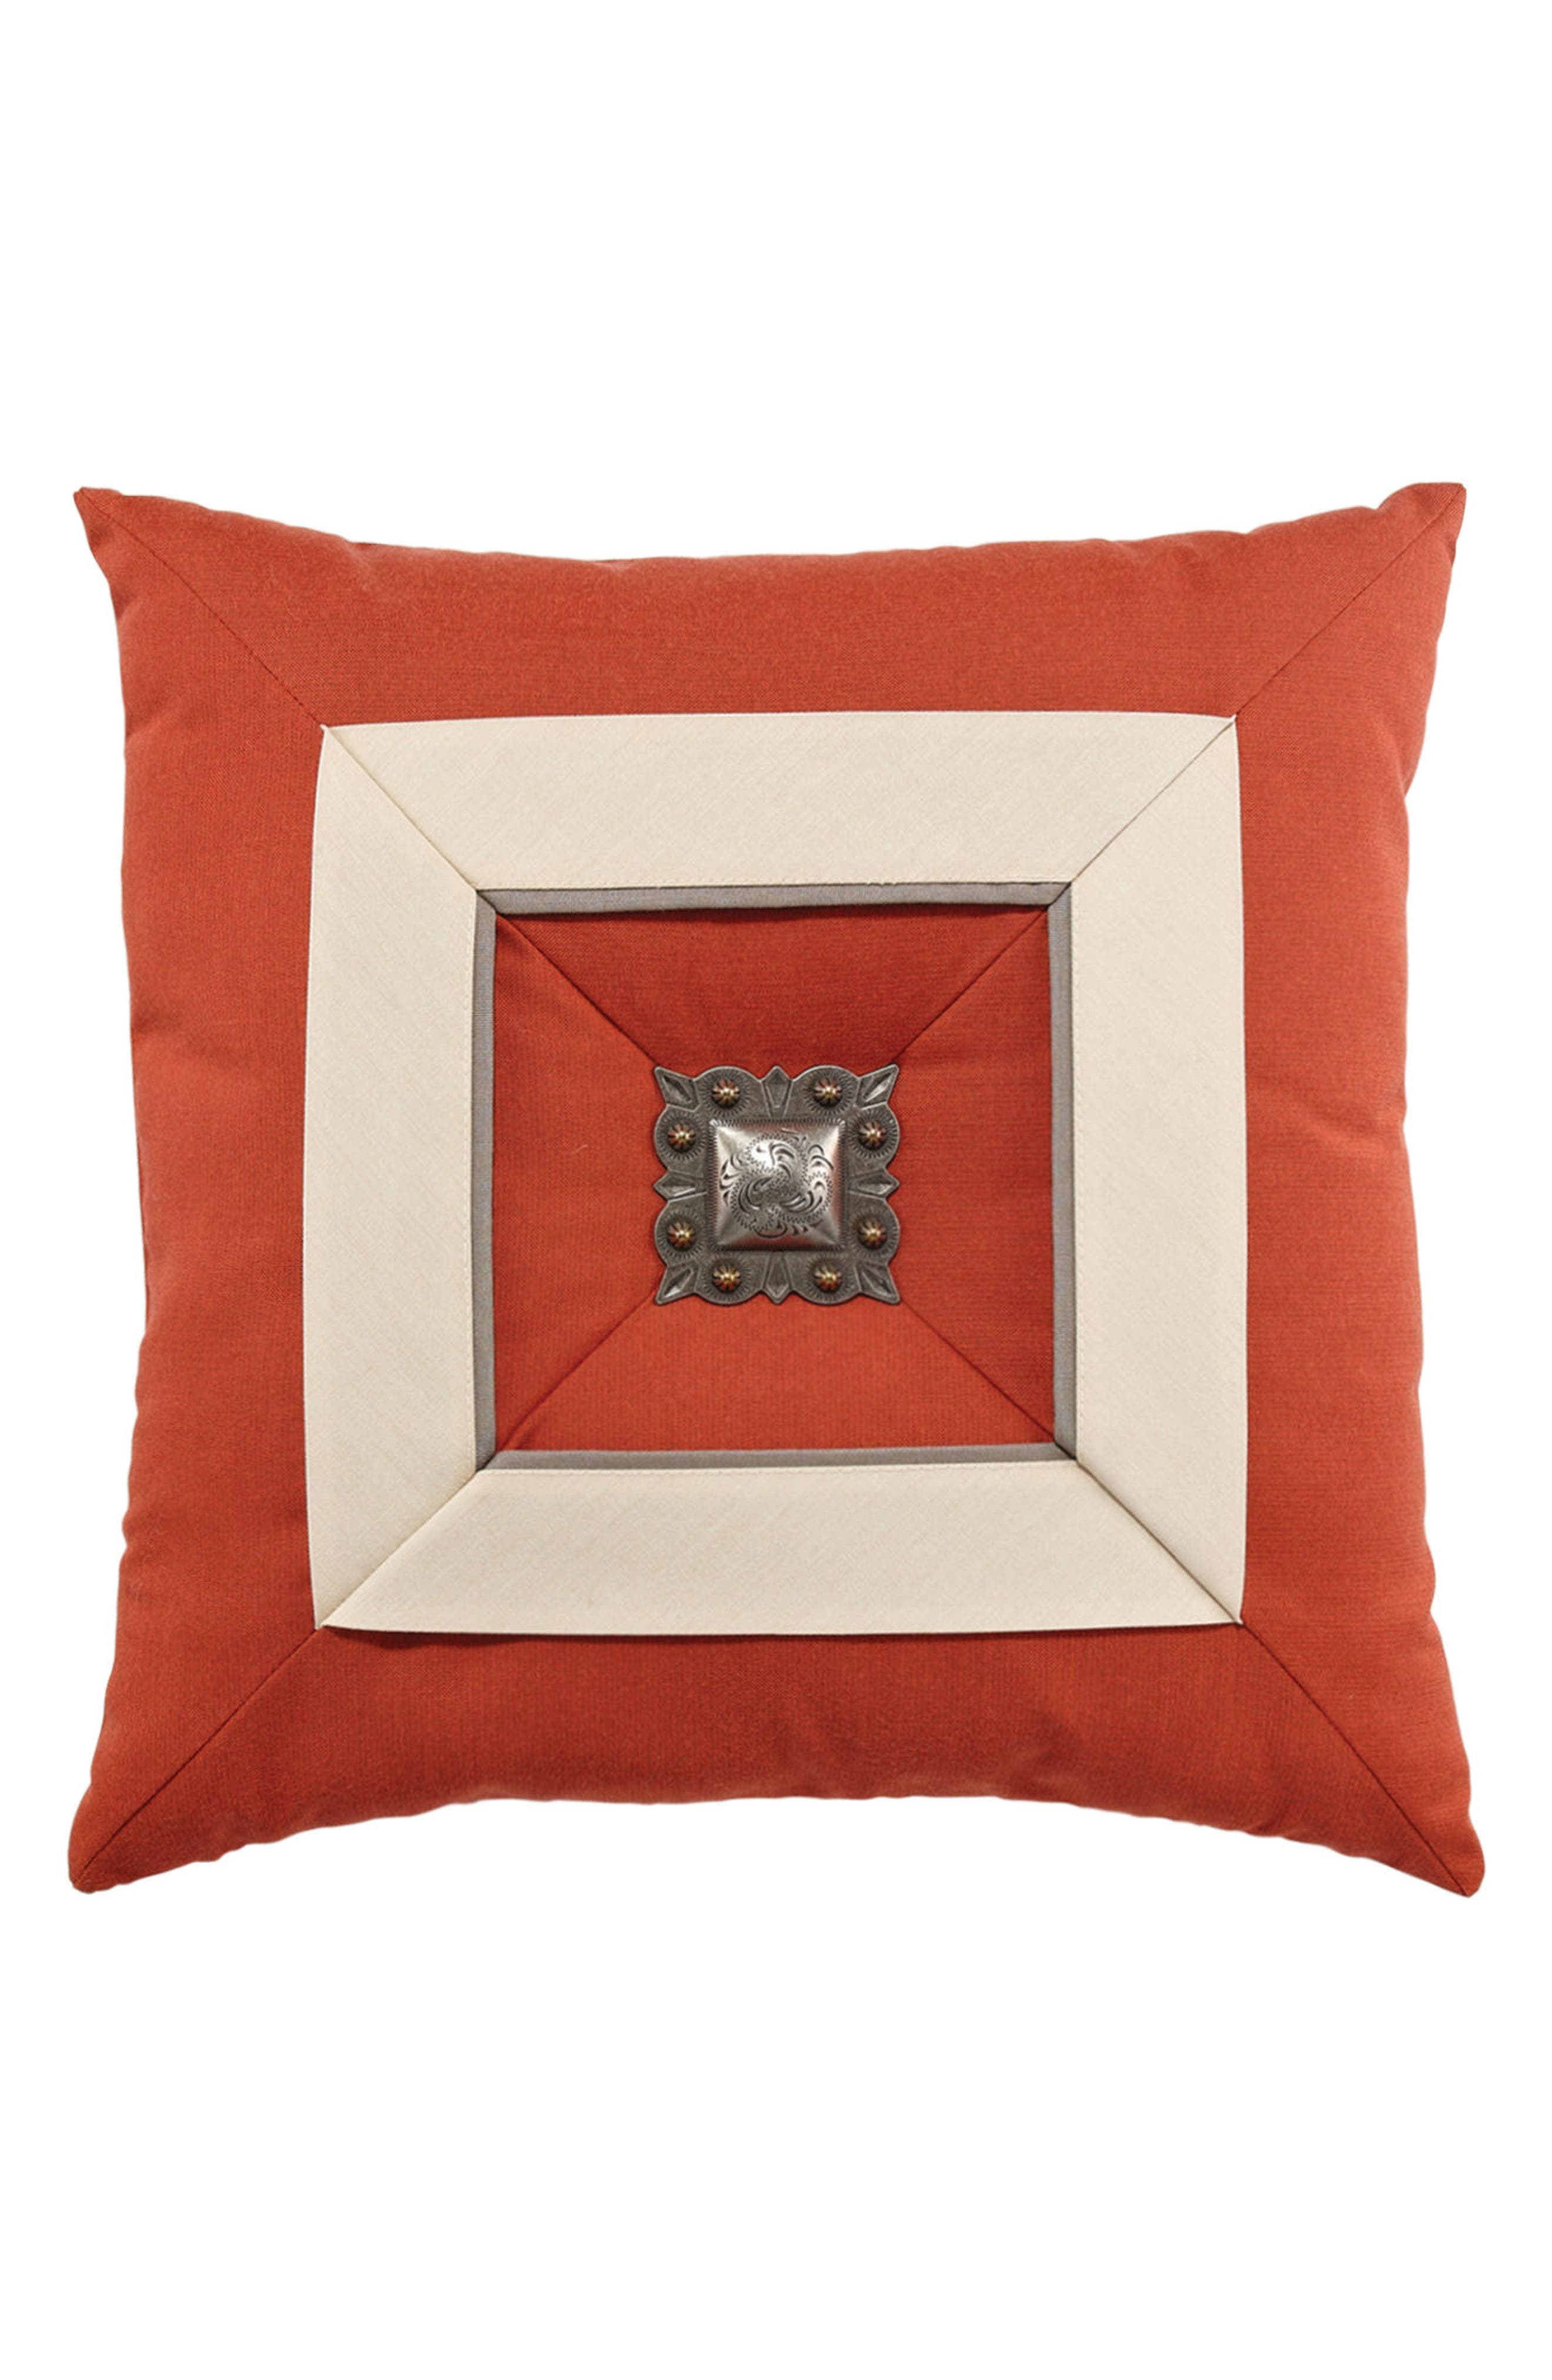 Coral Cruise Indoor/Outdoor Accent Pillow,                         Main,                         color, 801